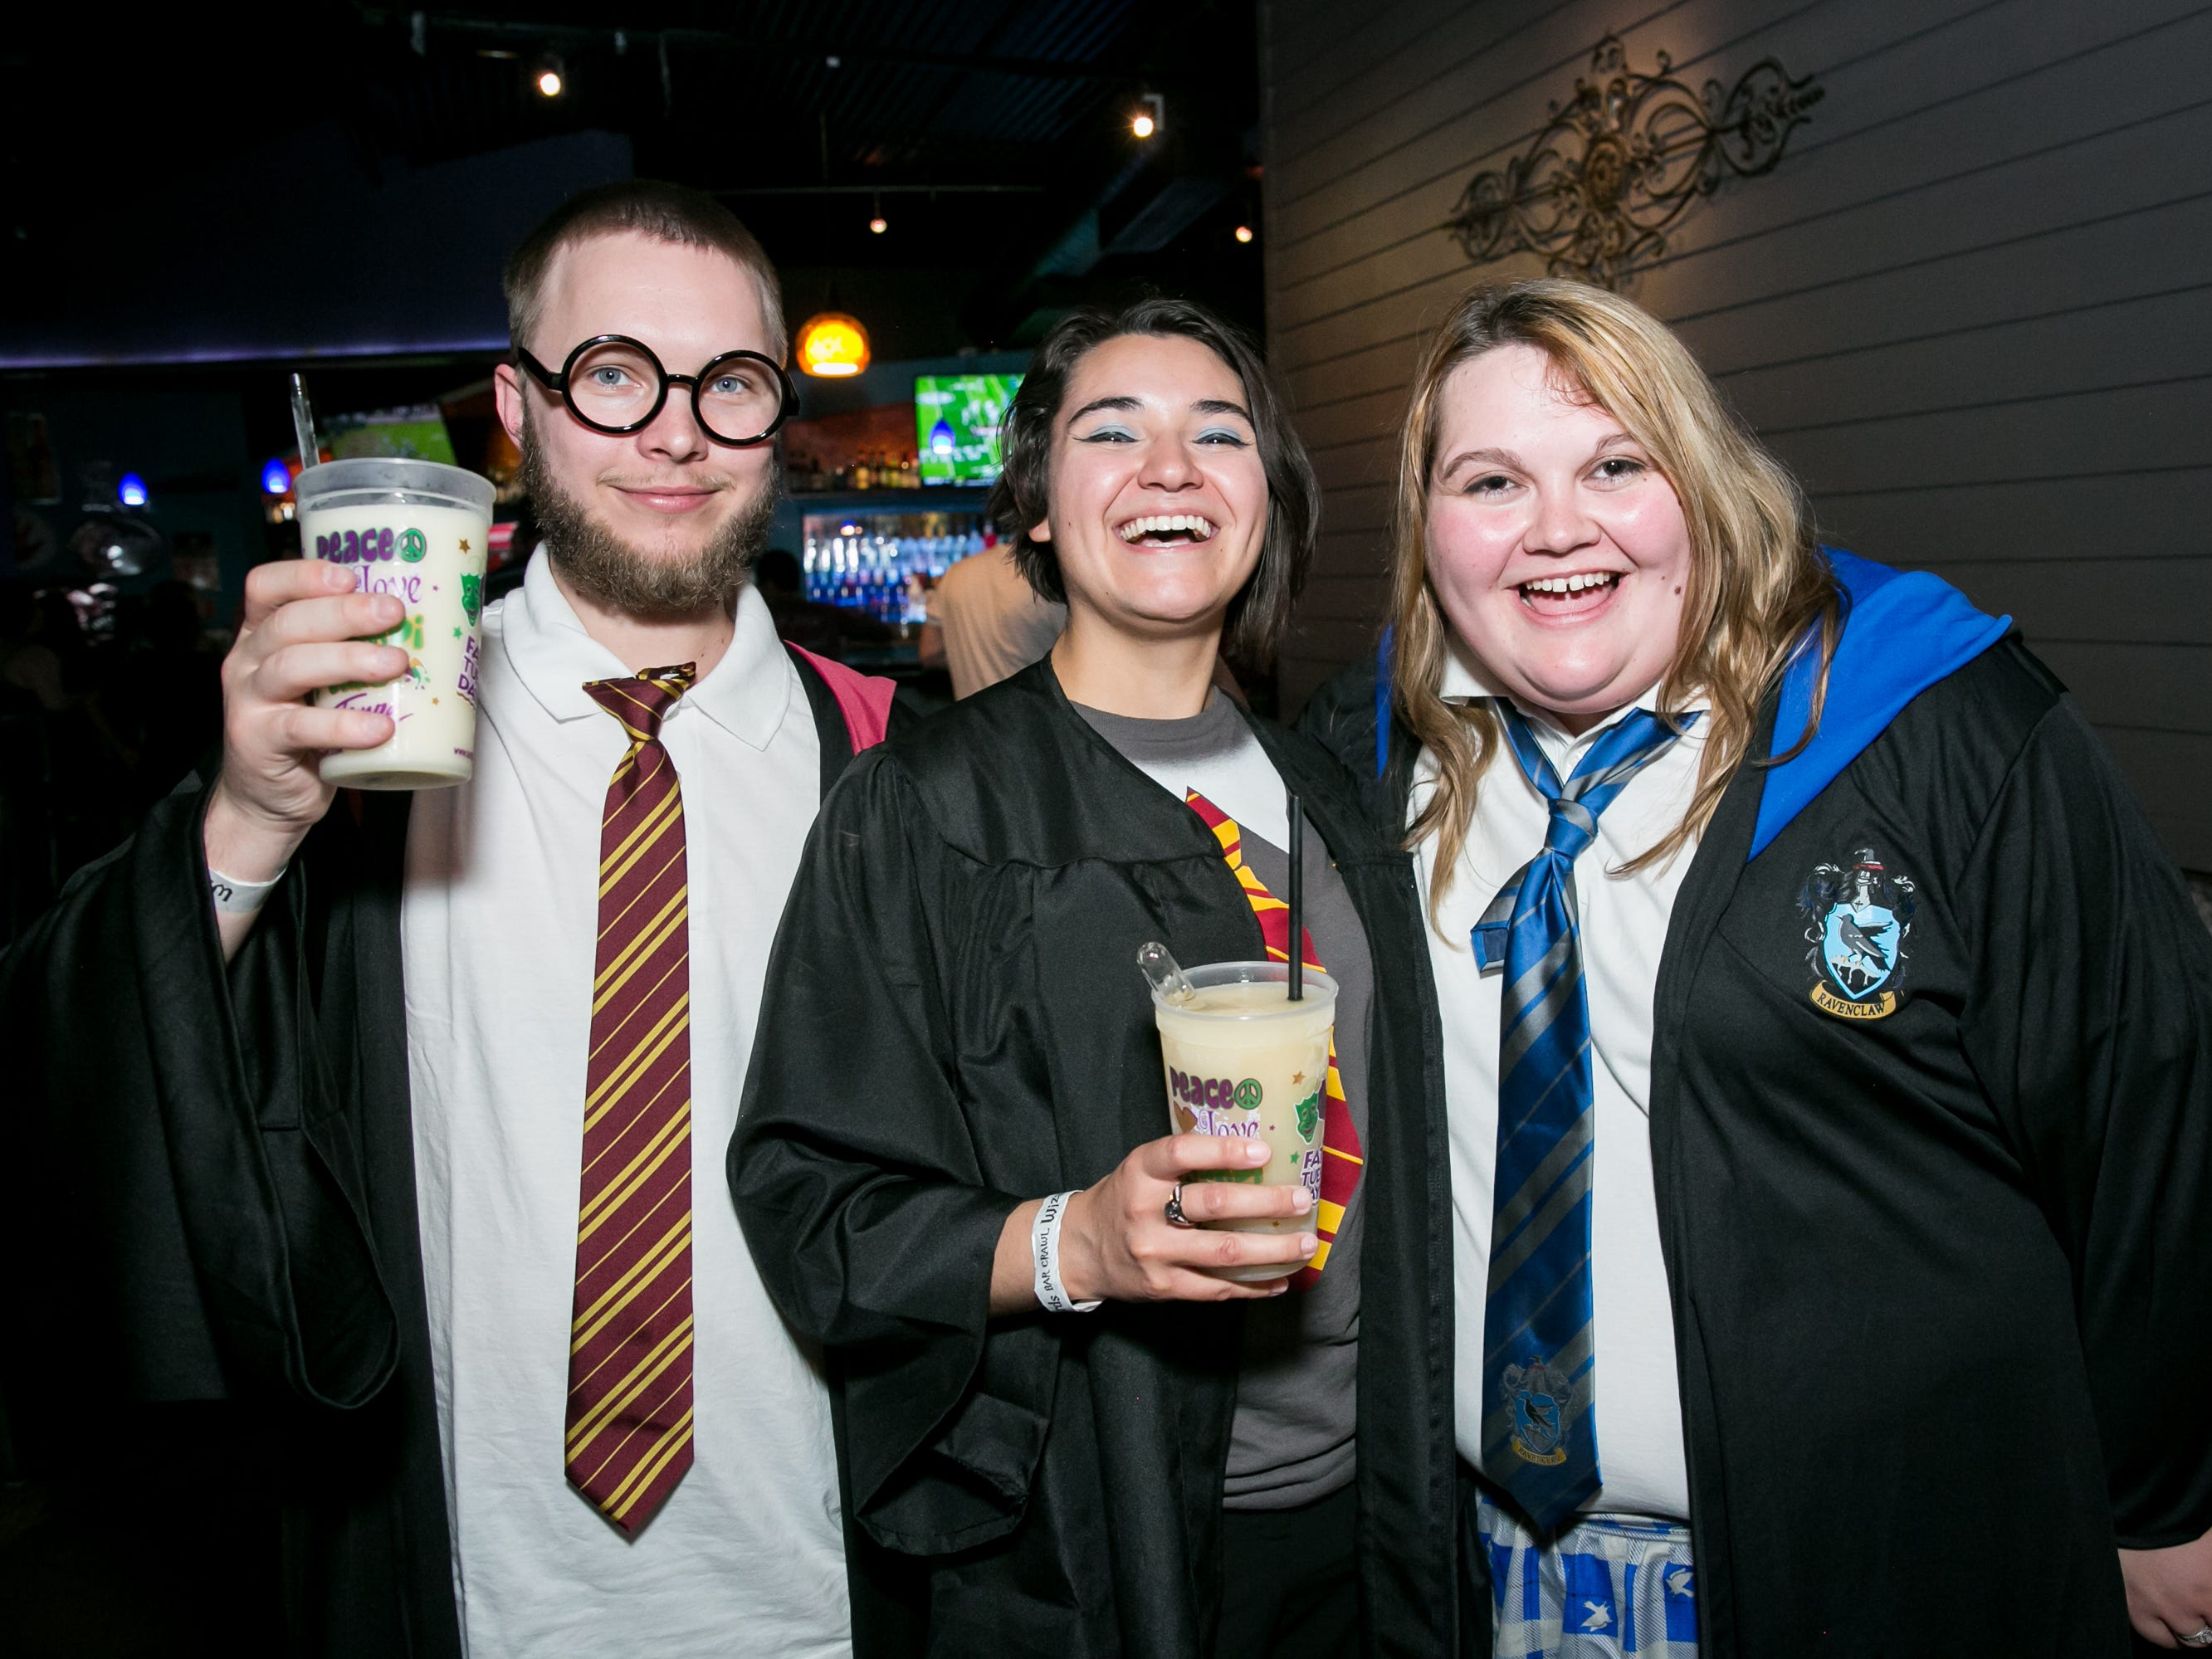 These pals went on an adventure at Fat Tuesday during the Wizards Bar Crawl in Tempe on Saturday, September 22, 2018.